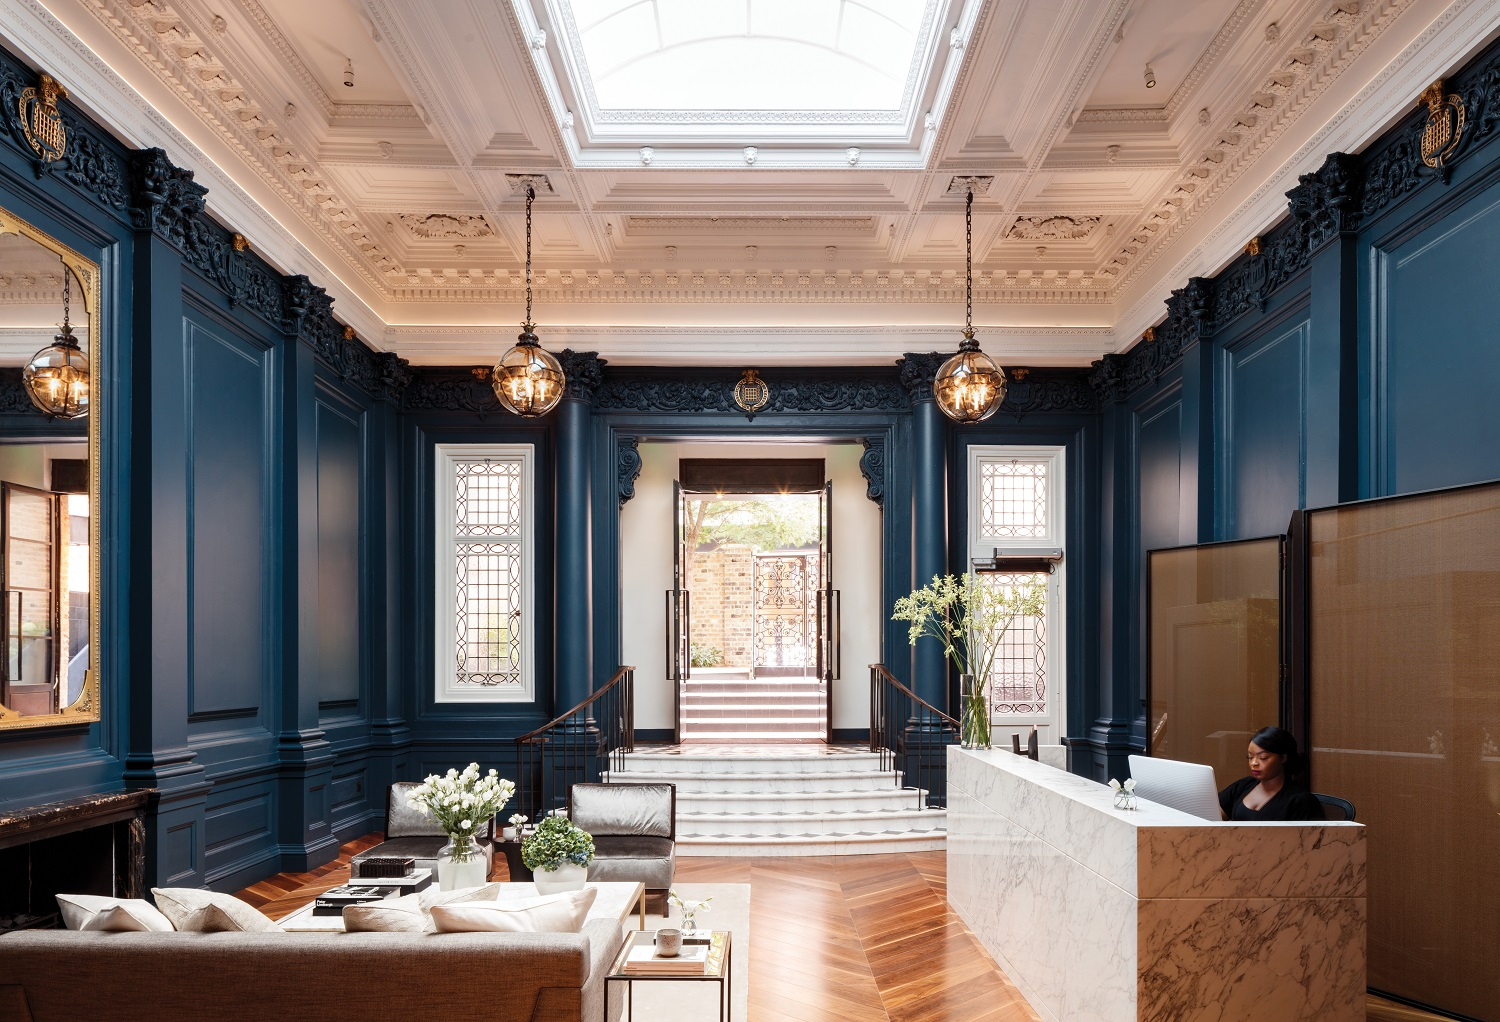 Stunning entrance hall in Period building London